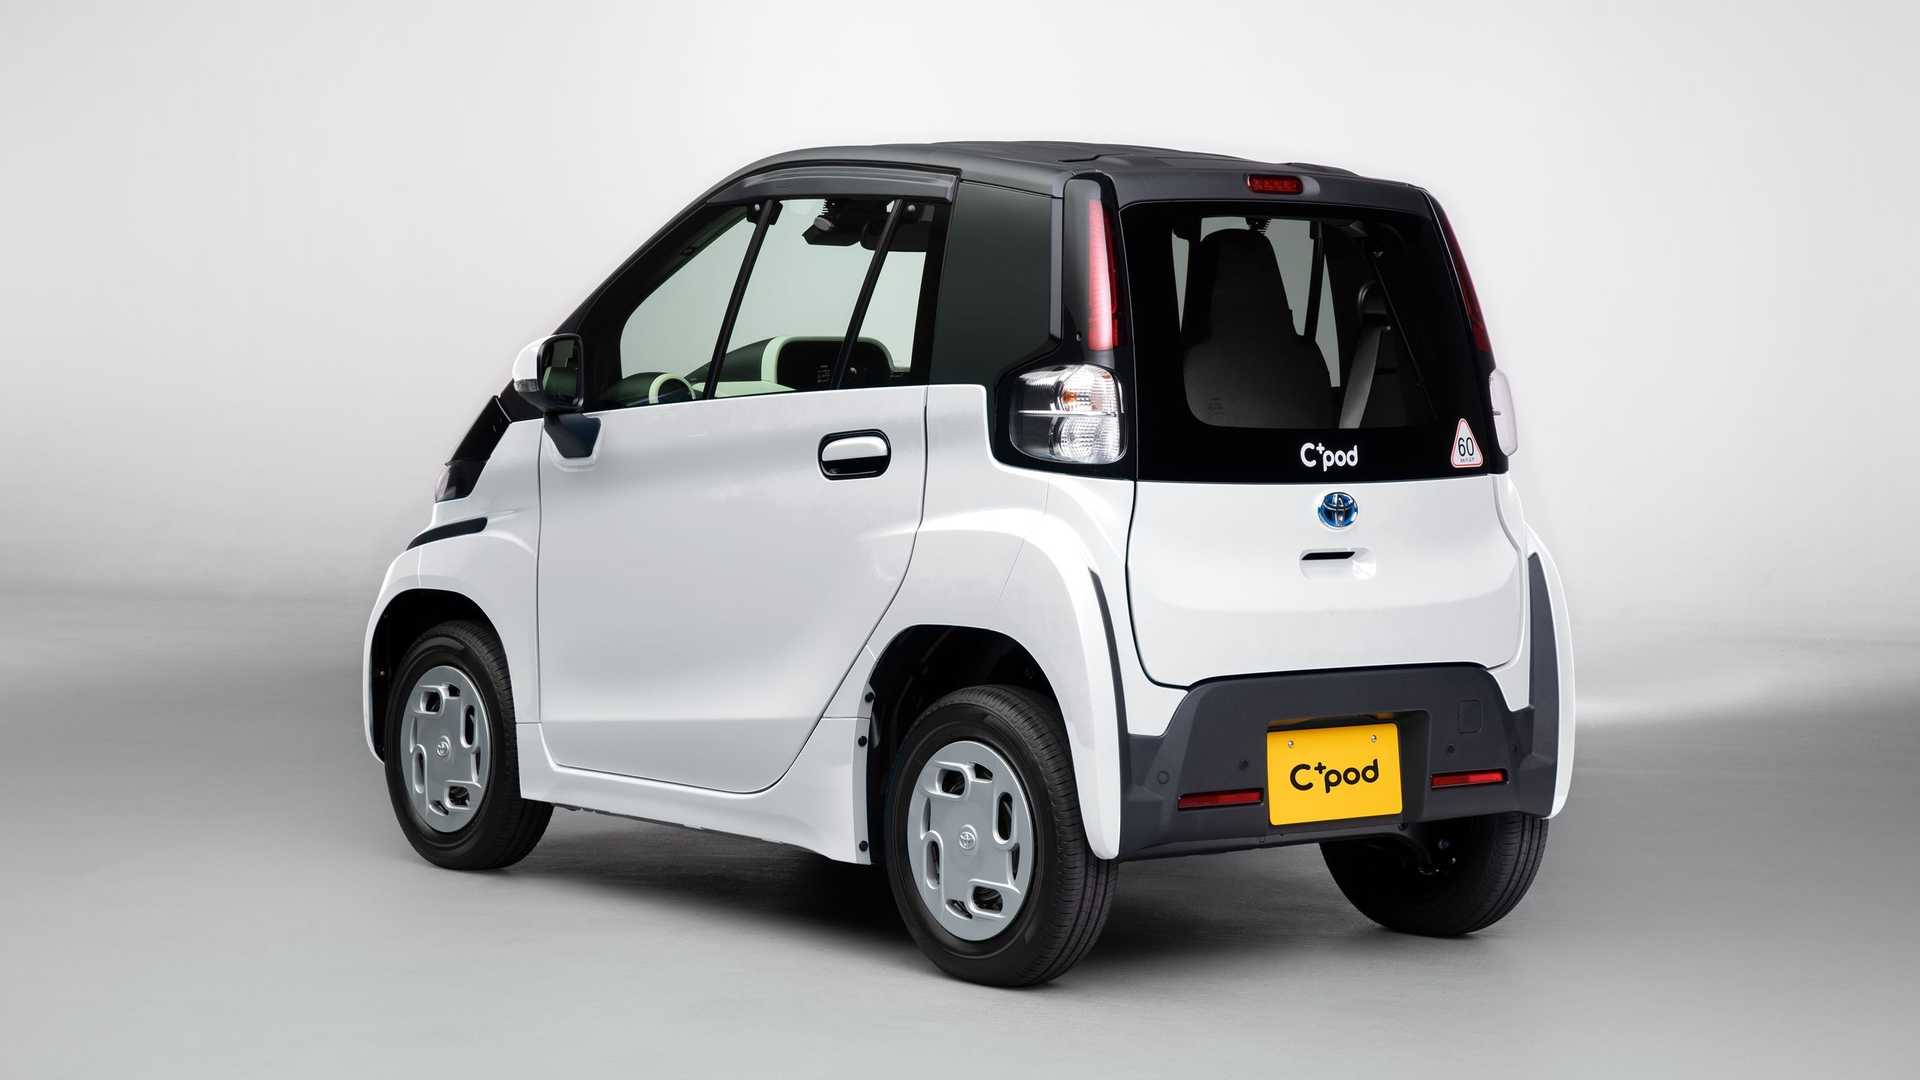 It S Time To Rethink The Tax Credit On Electric Vehicles The Next Avenue